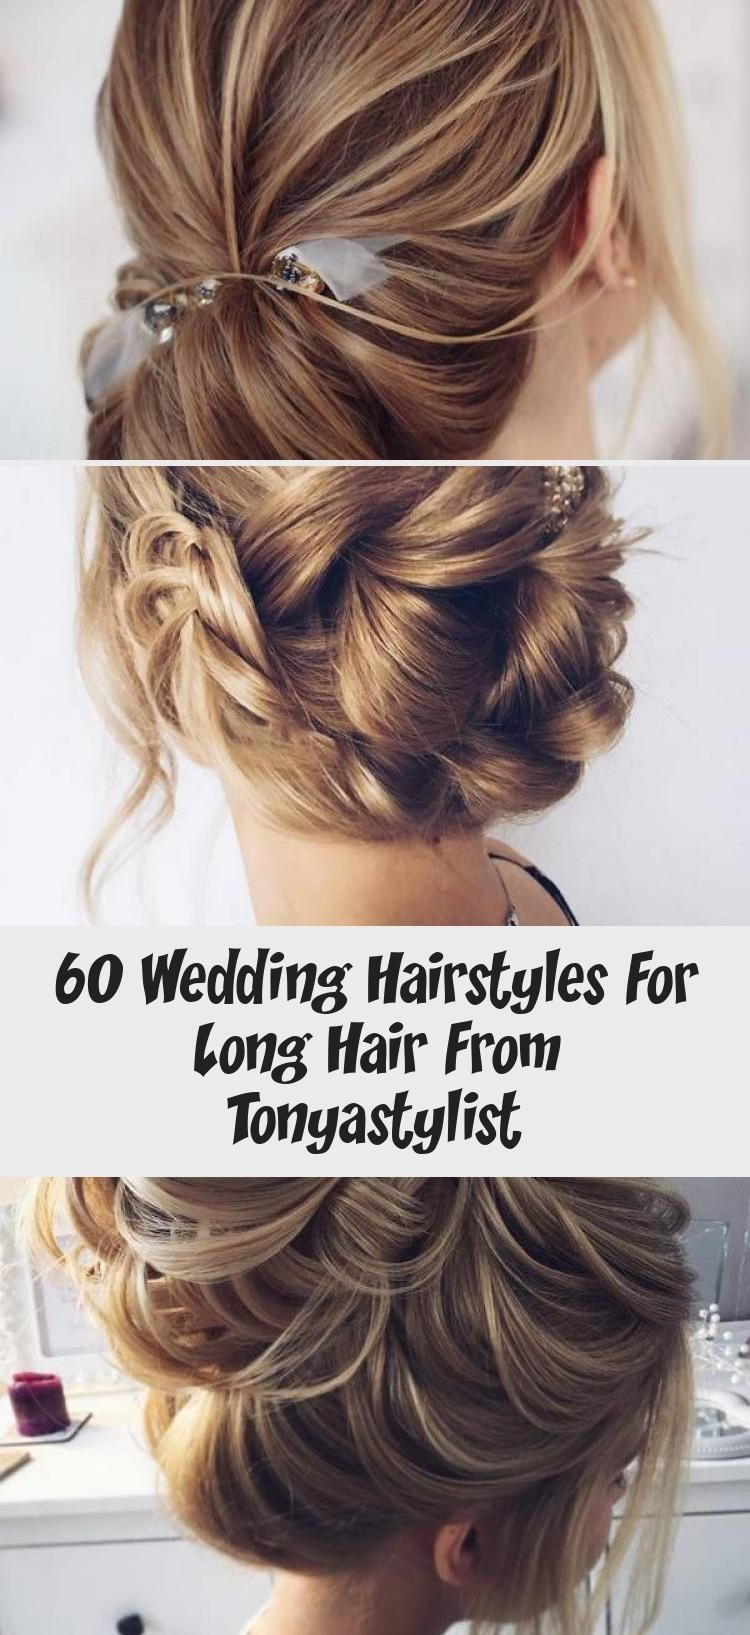 Pin by hoc123aku on bridemaids hair in 2020 | Bun hairstyles for long hair, Wedding hairstyles ...